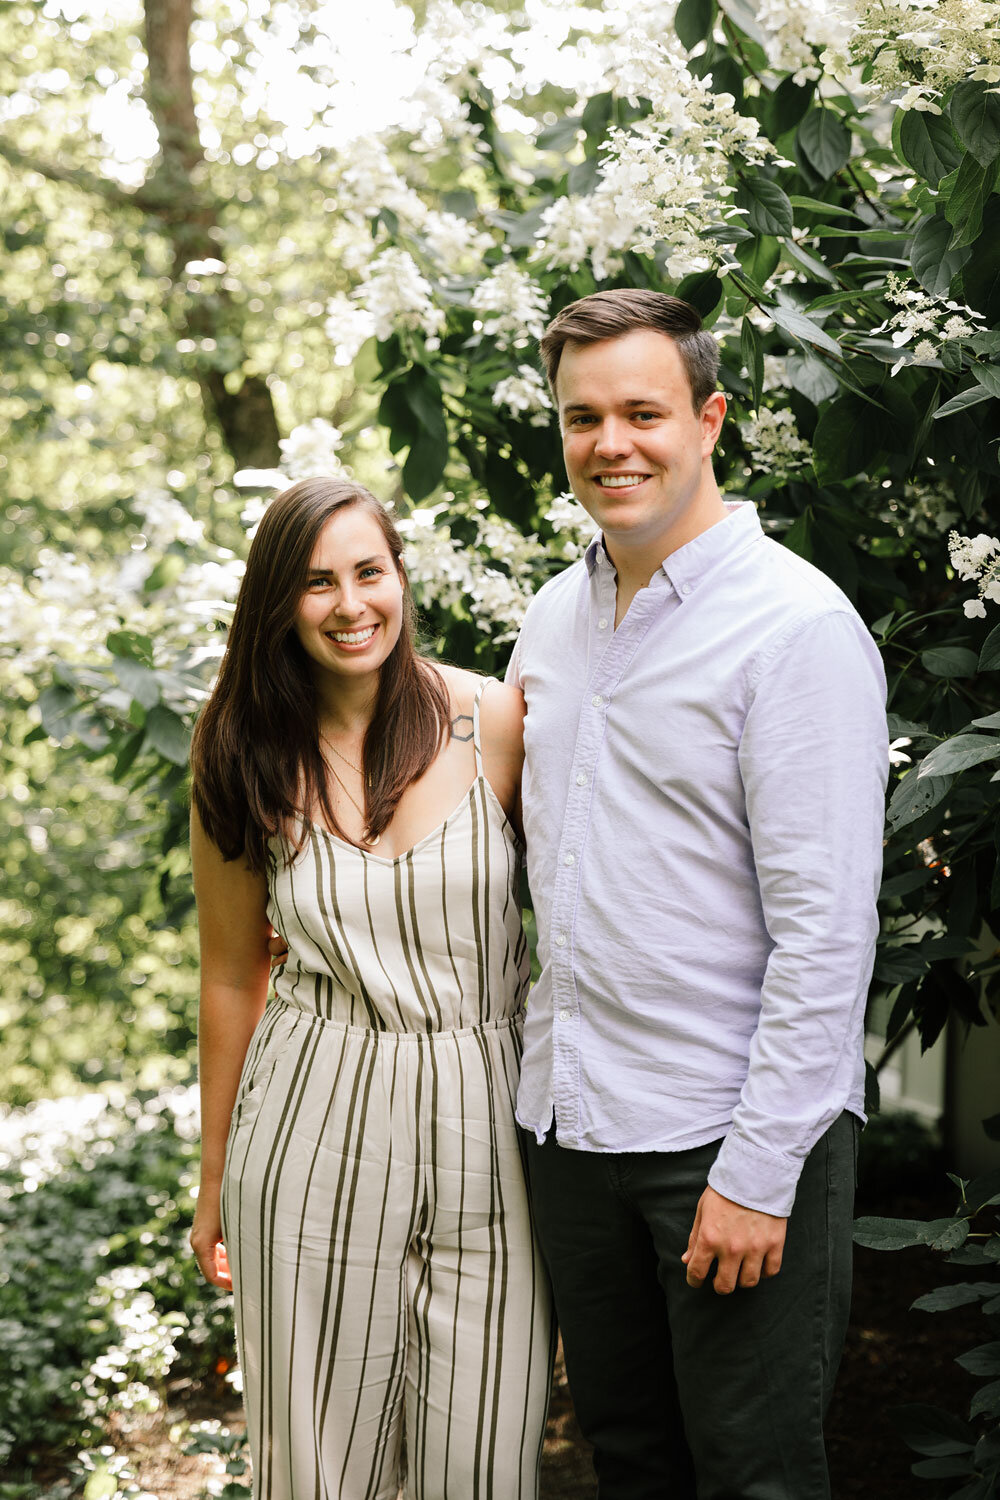 south-chagrin-reservation-engagement-portraits-wedding-photographers-in-cleveland-1.jpg